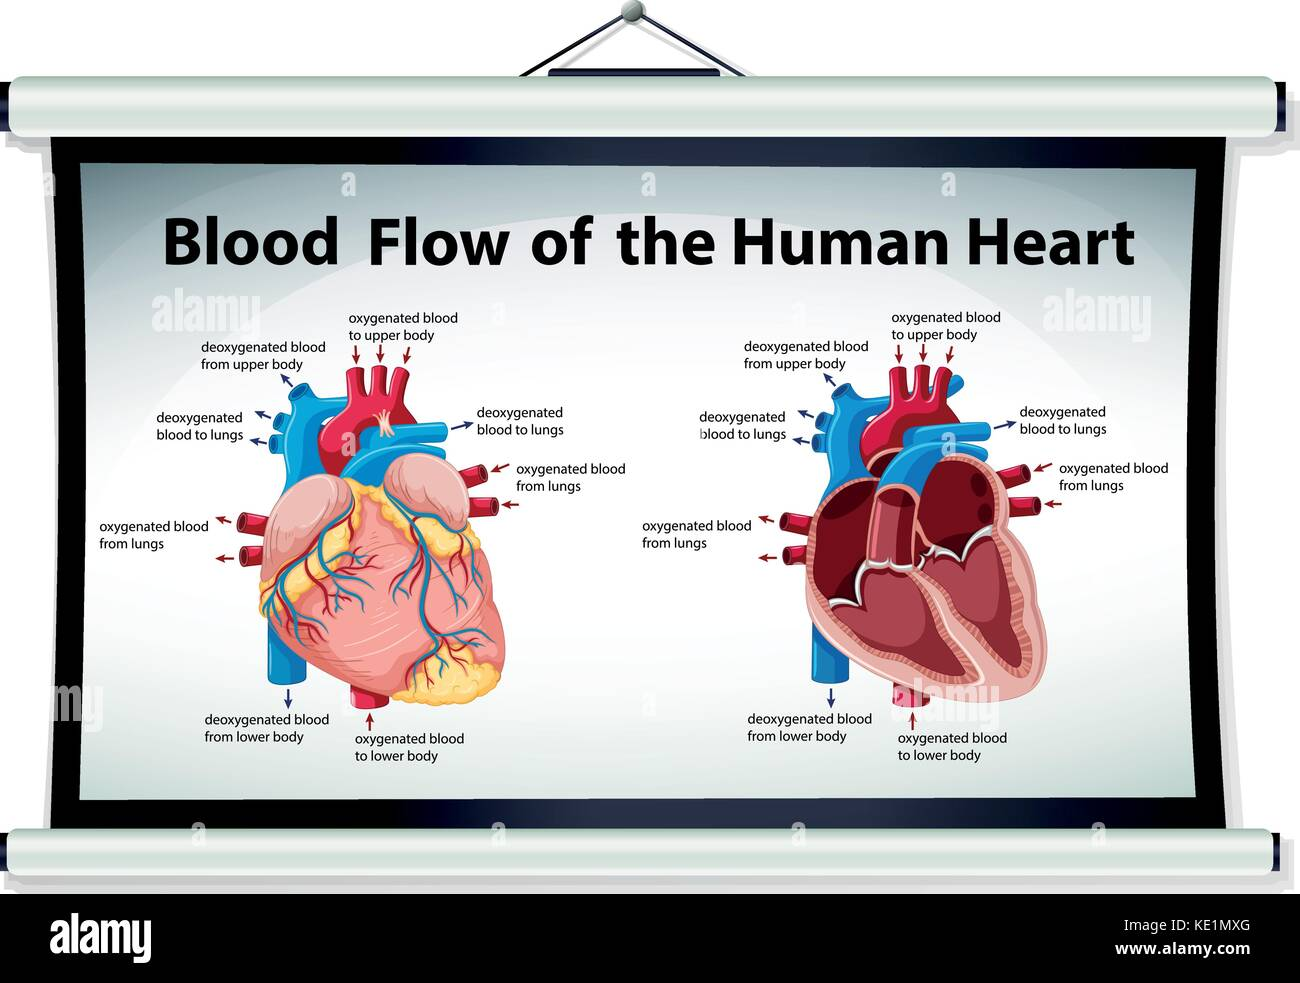 Diagram Showing Blood Flow In Human Heart Illustration